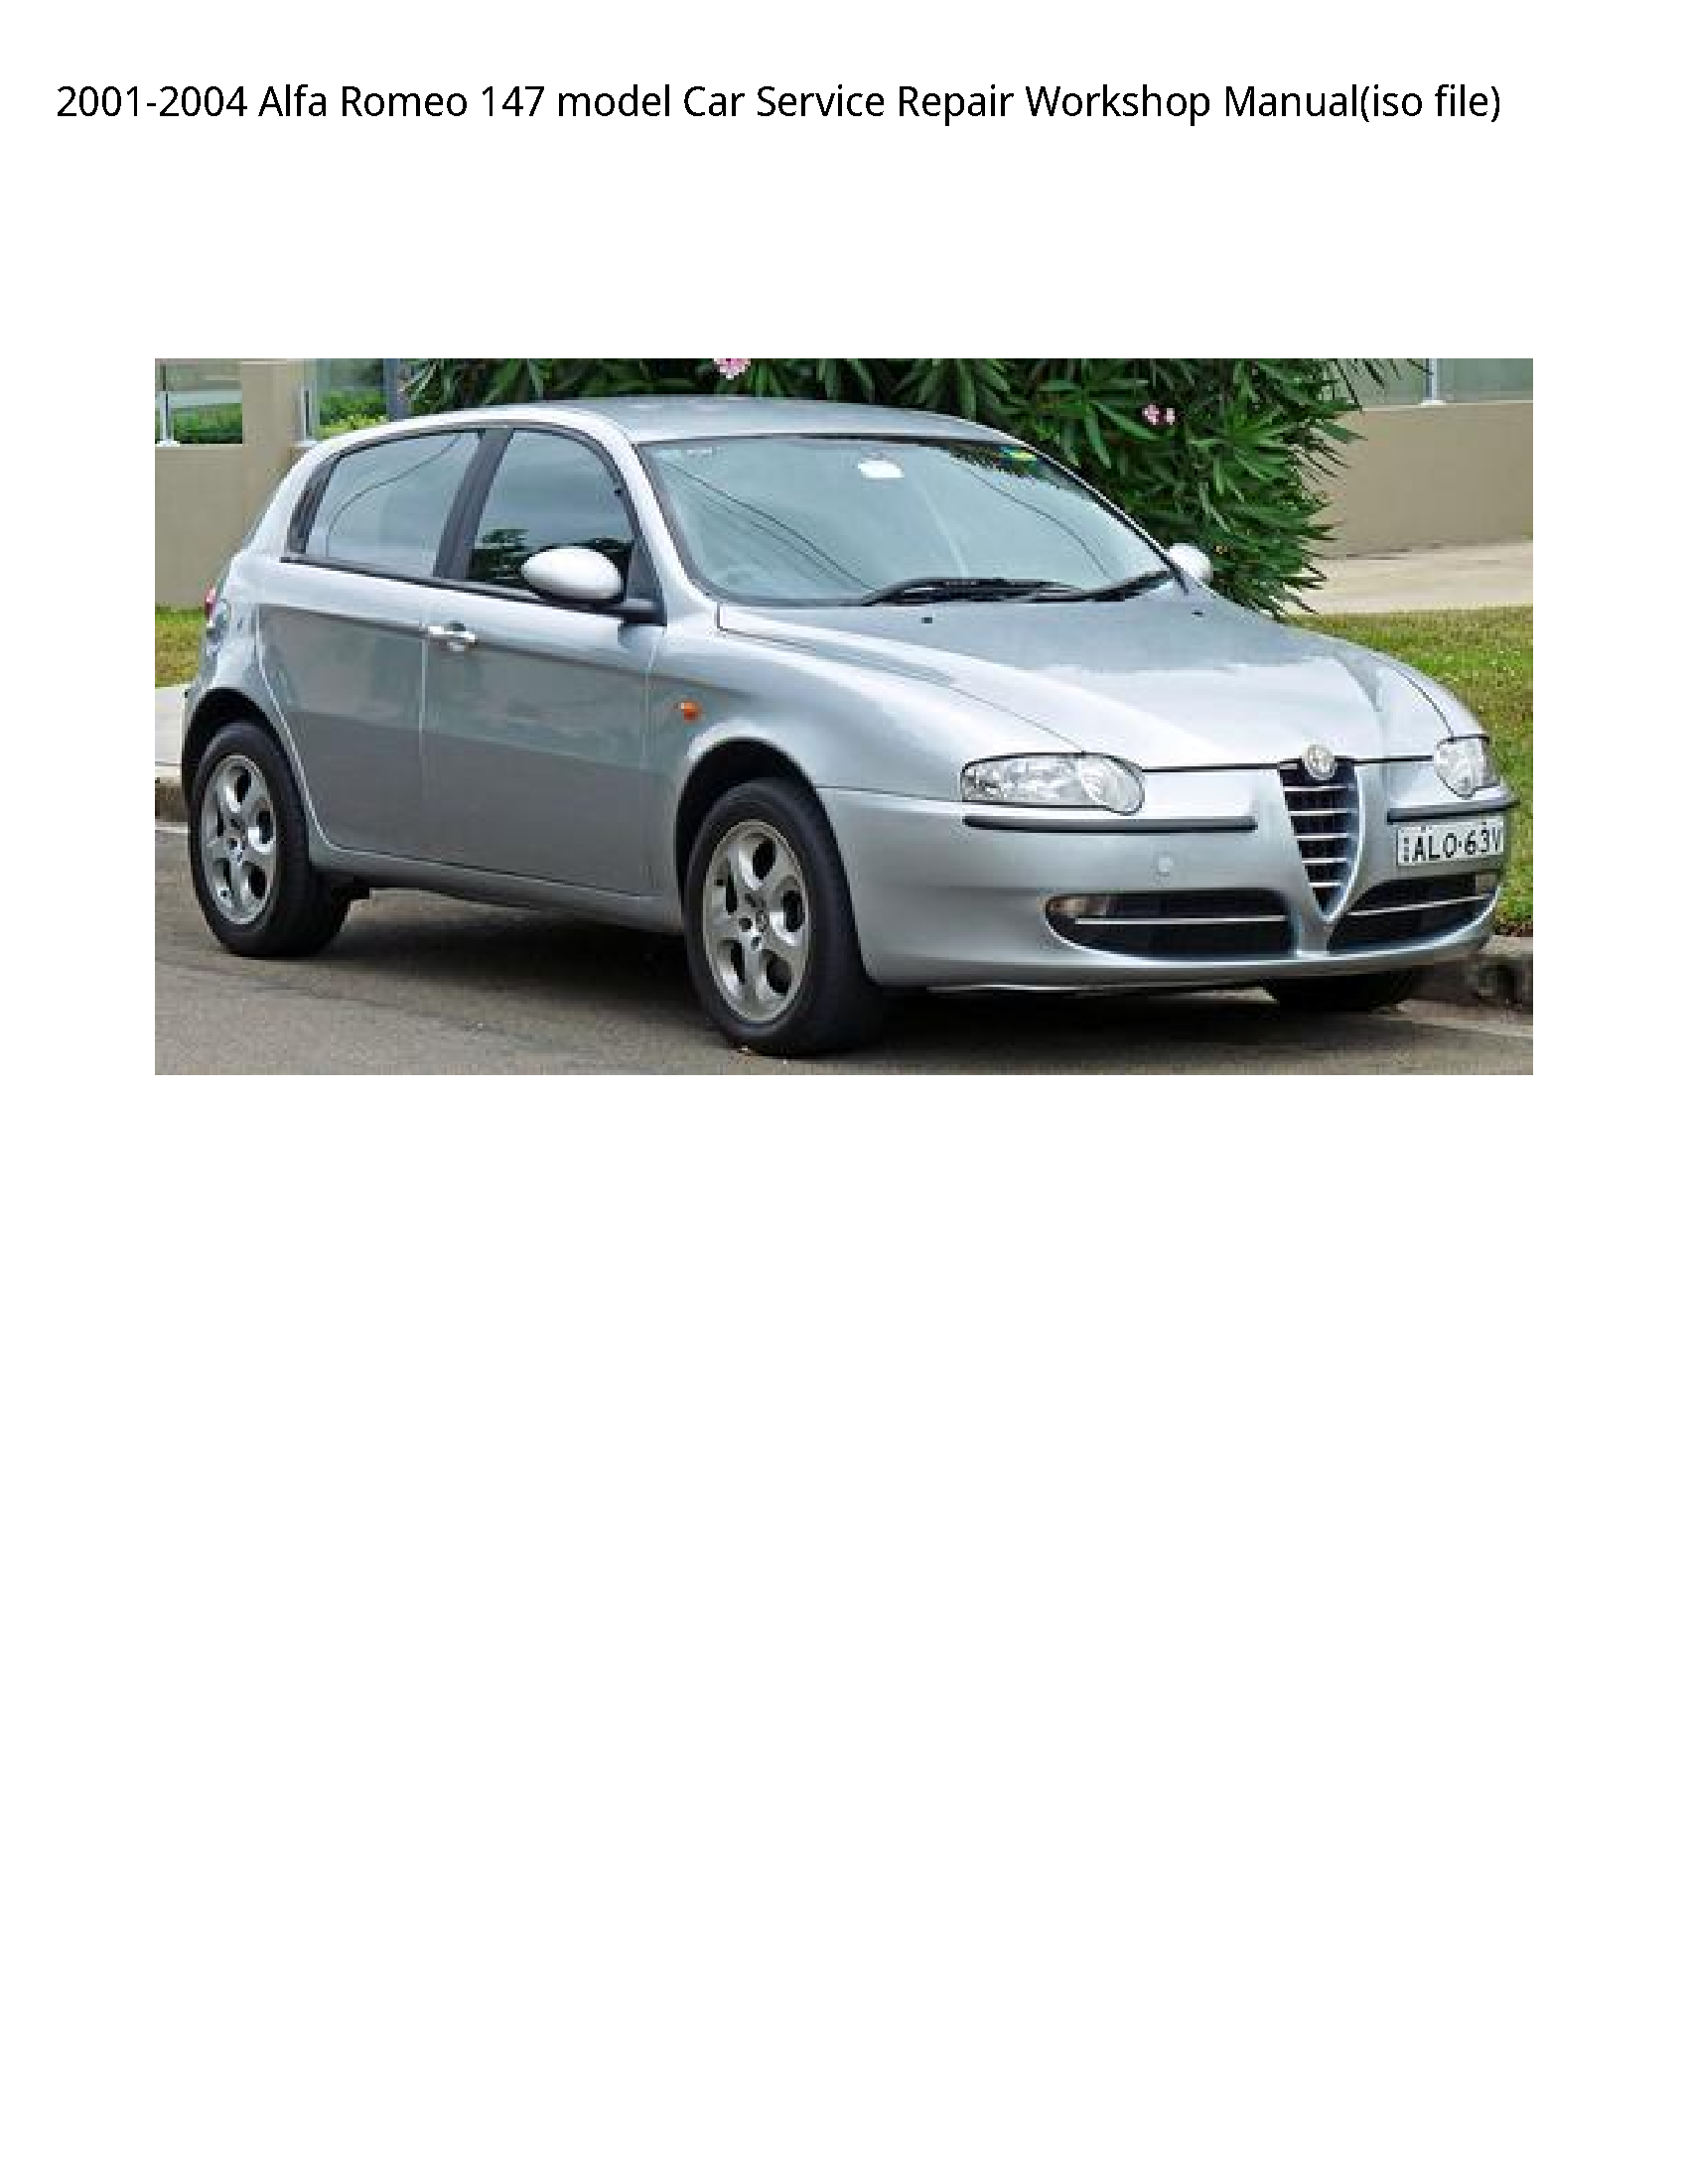 Alfa Romeo 147 model Car manual